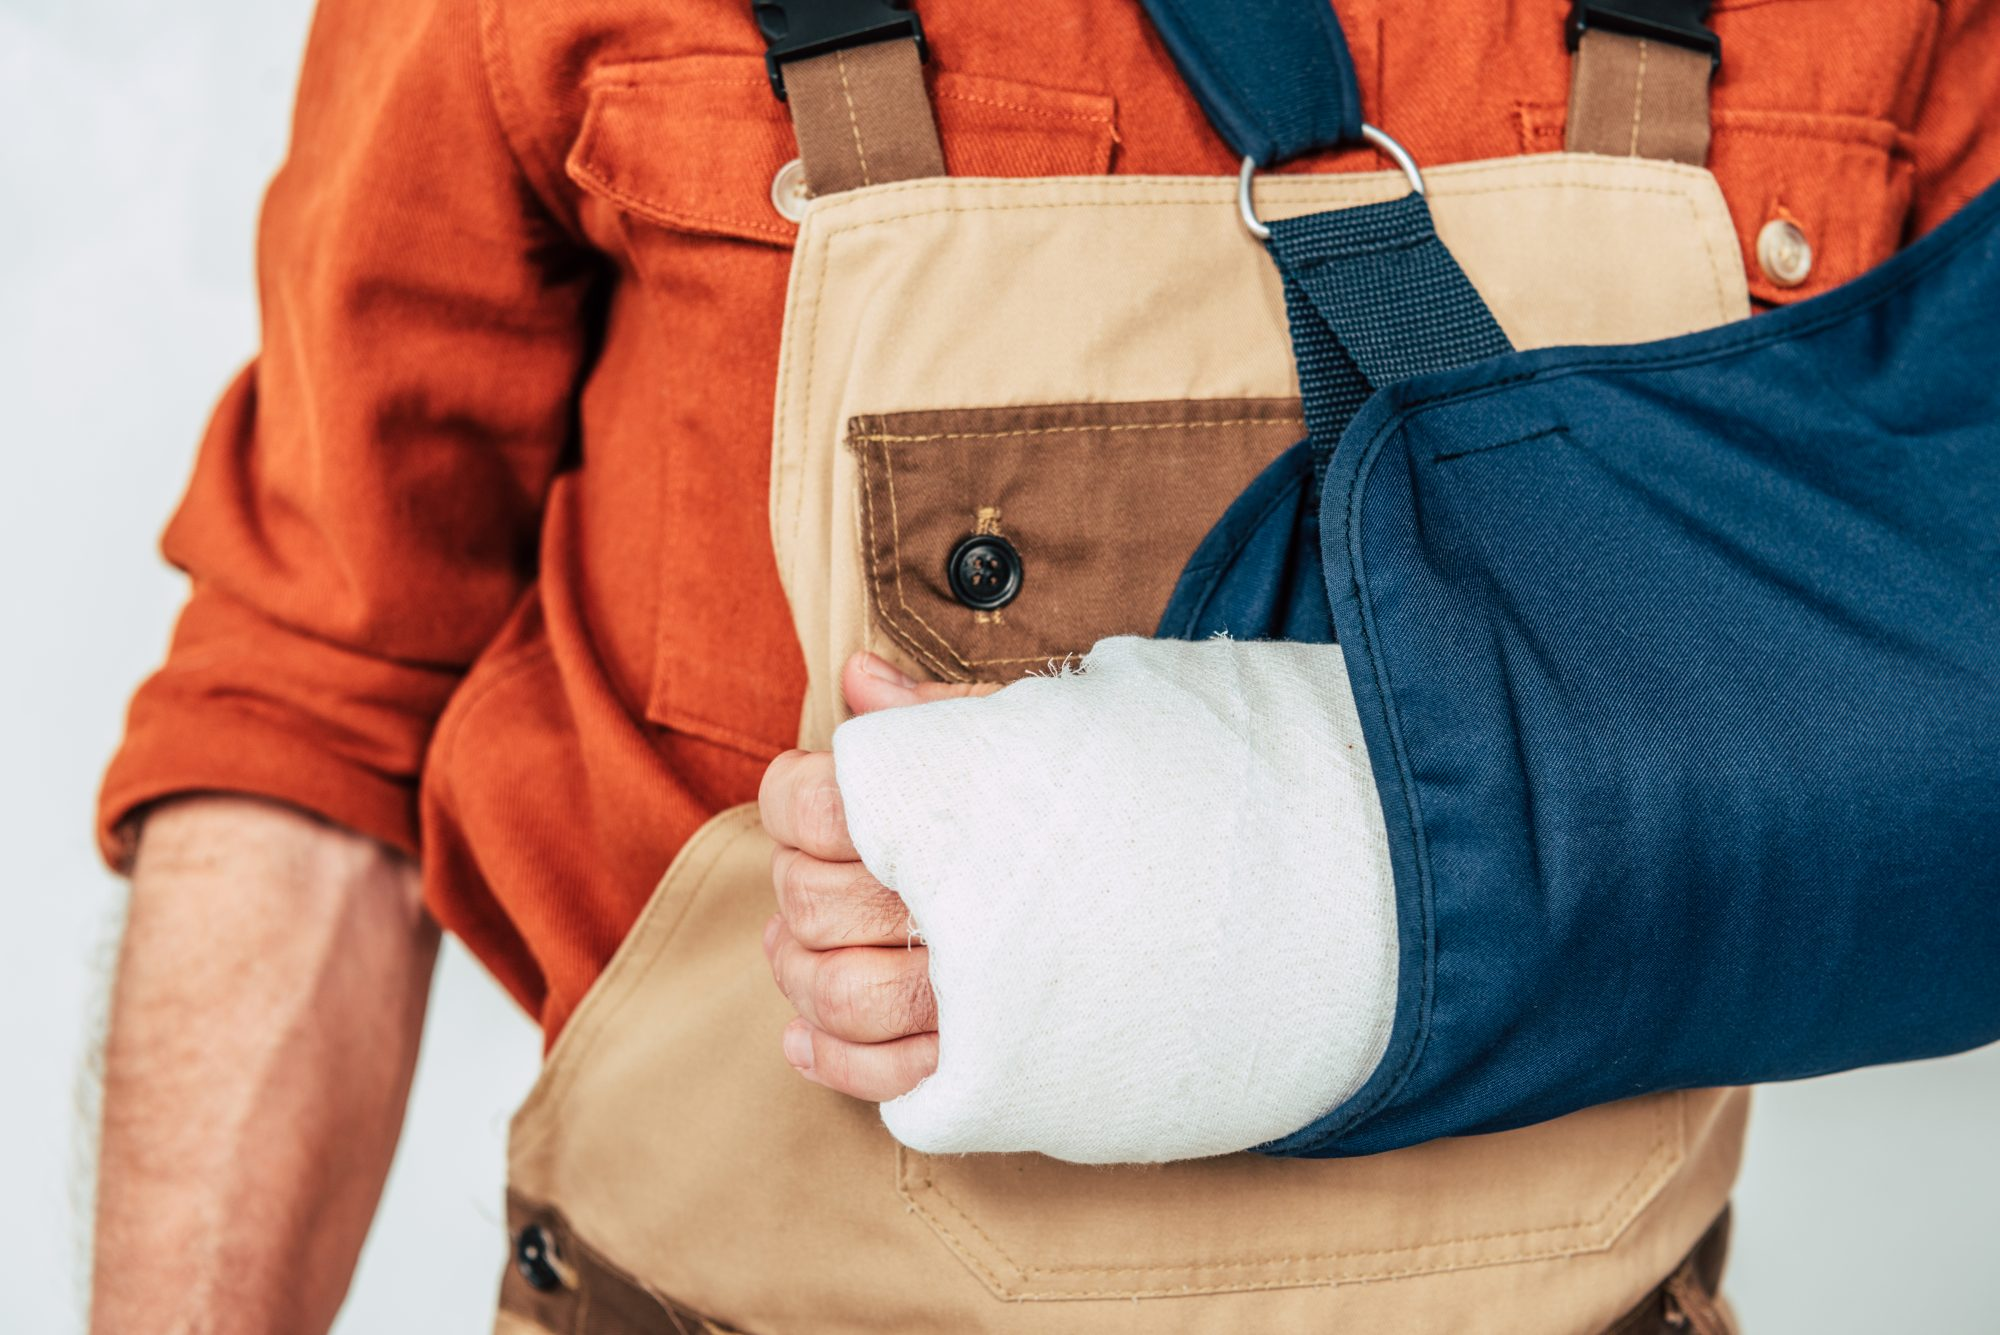 A Livingston Parish man with his arm in a cast after experiencing a personal injury.